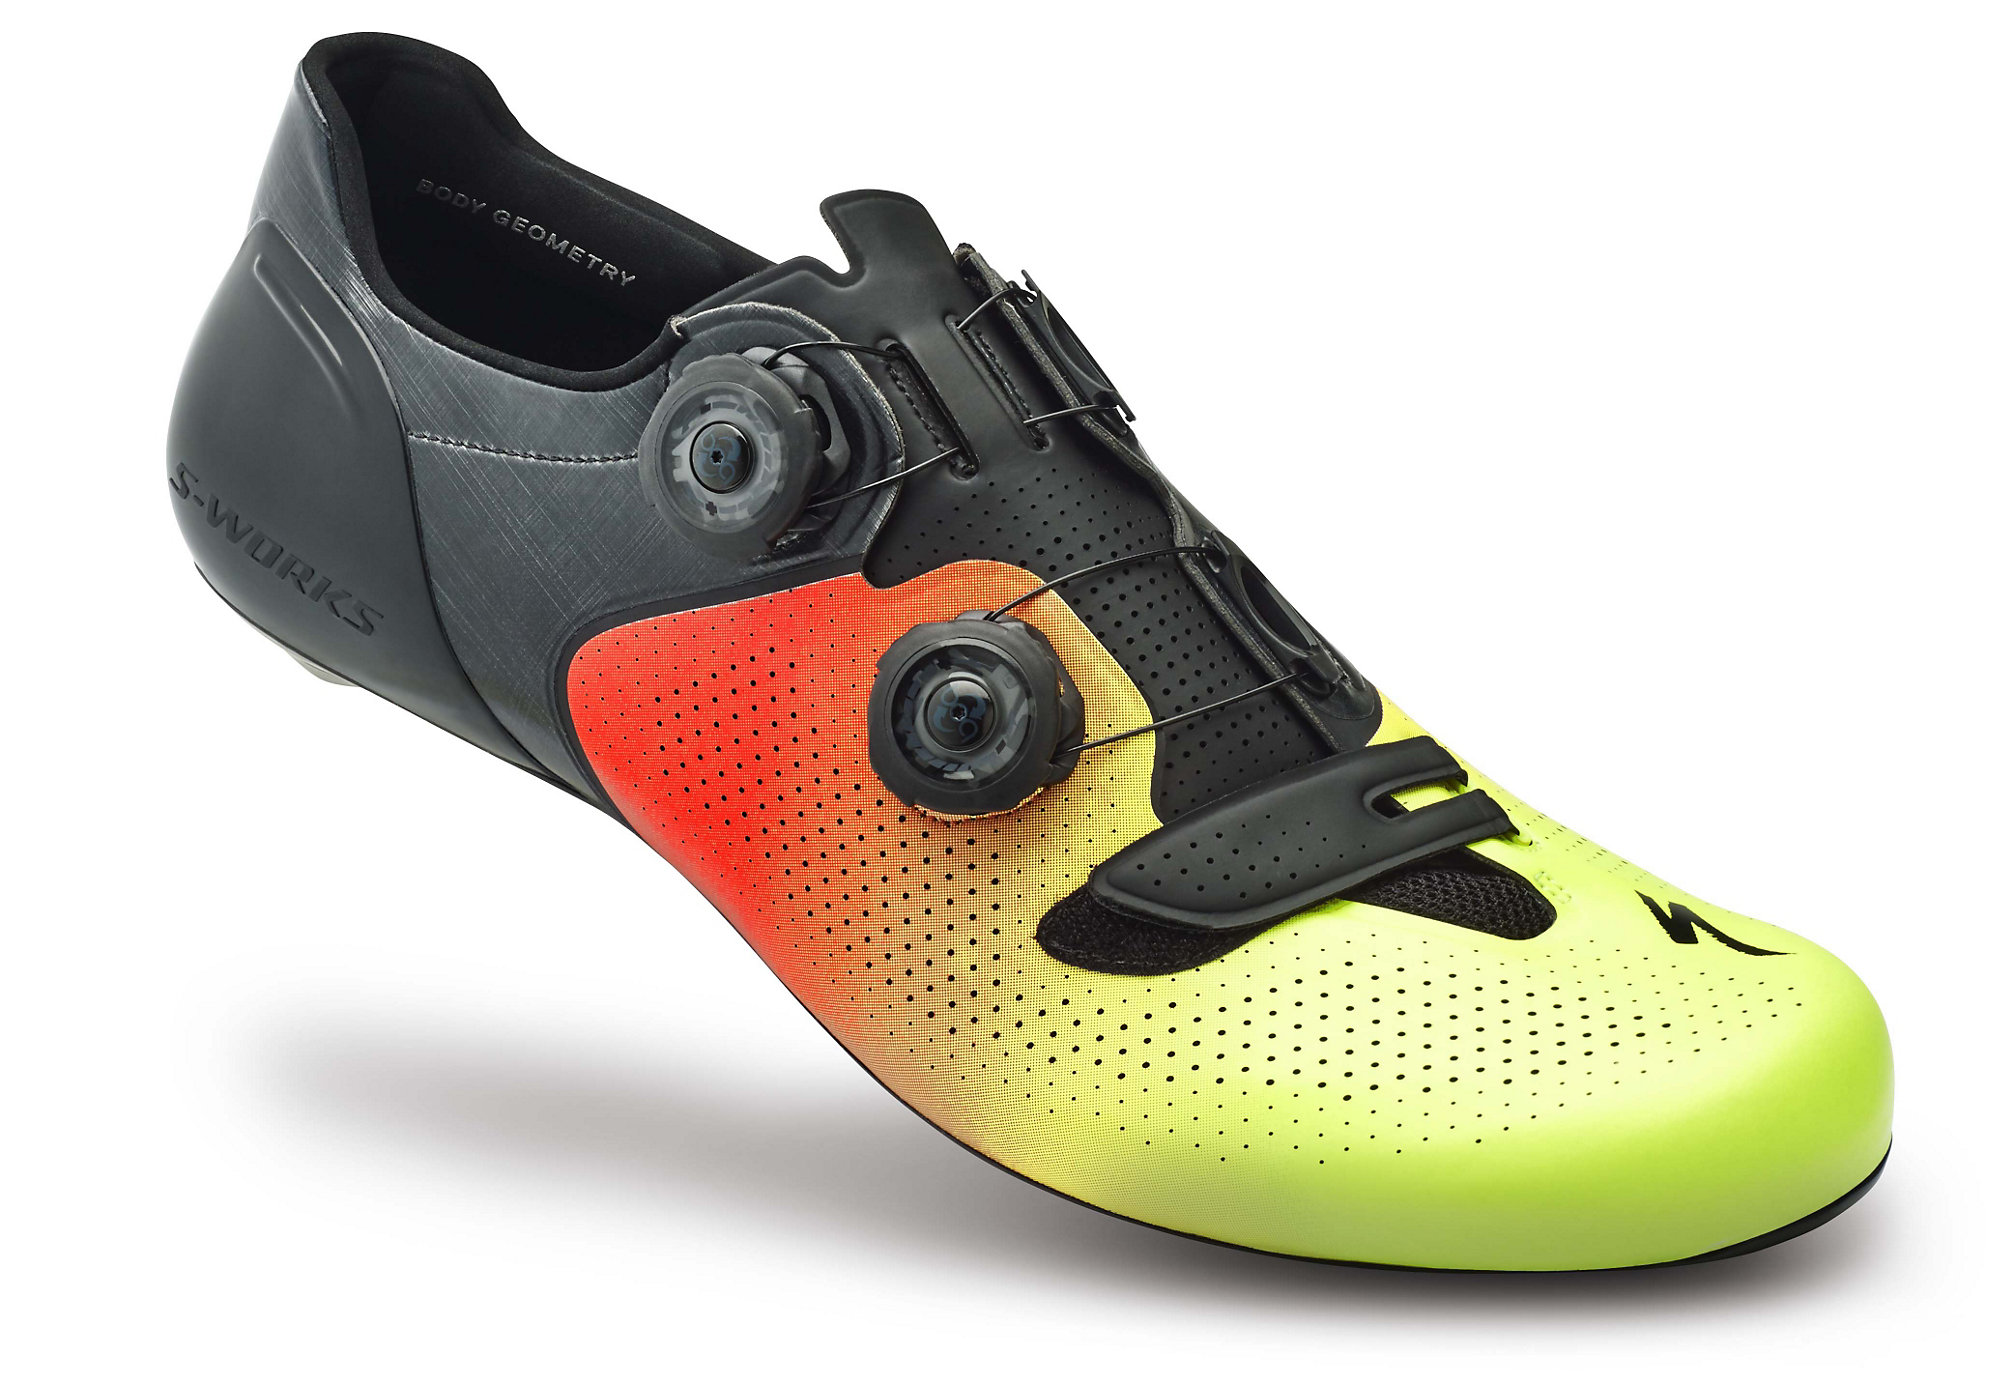 c41e93e4dc2 Specialized S-Works 6 Road Shoes Torch Edition - AJ's Bikes and ...